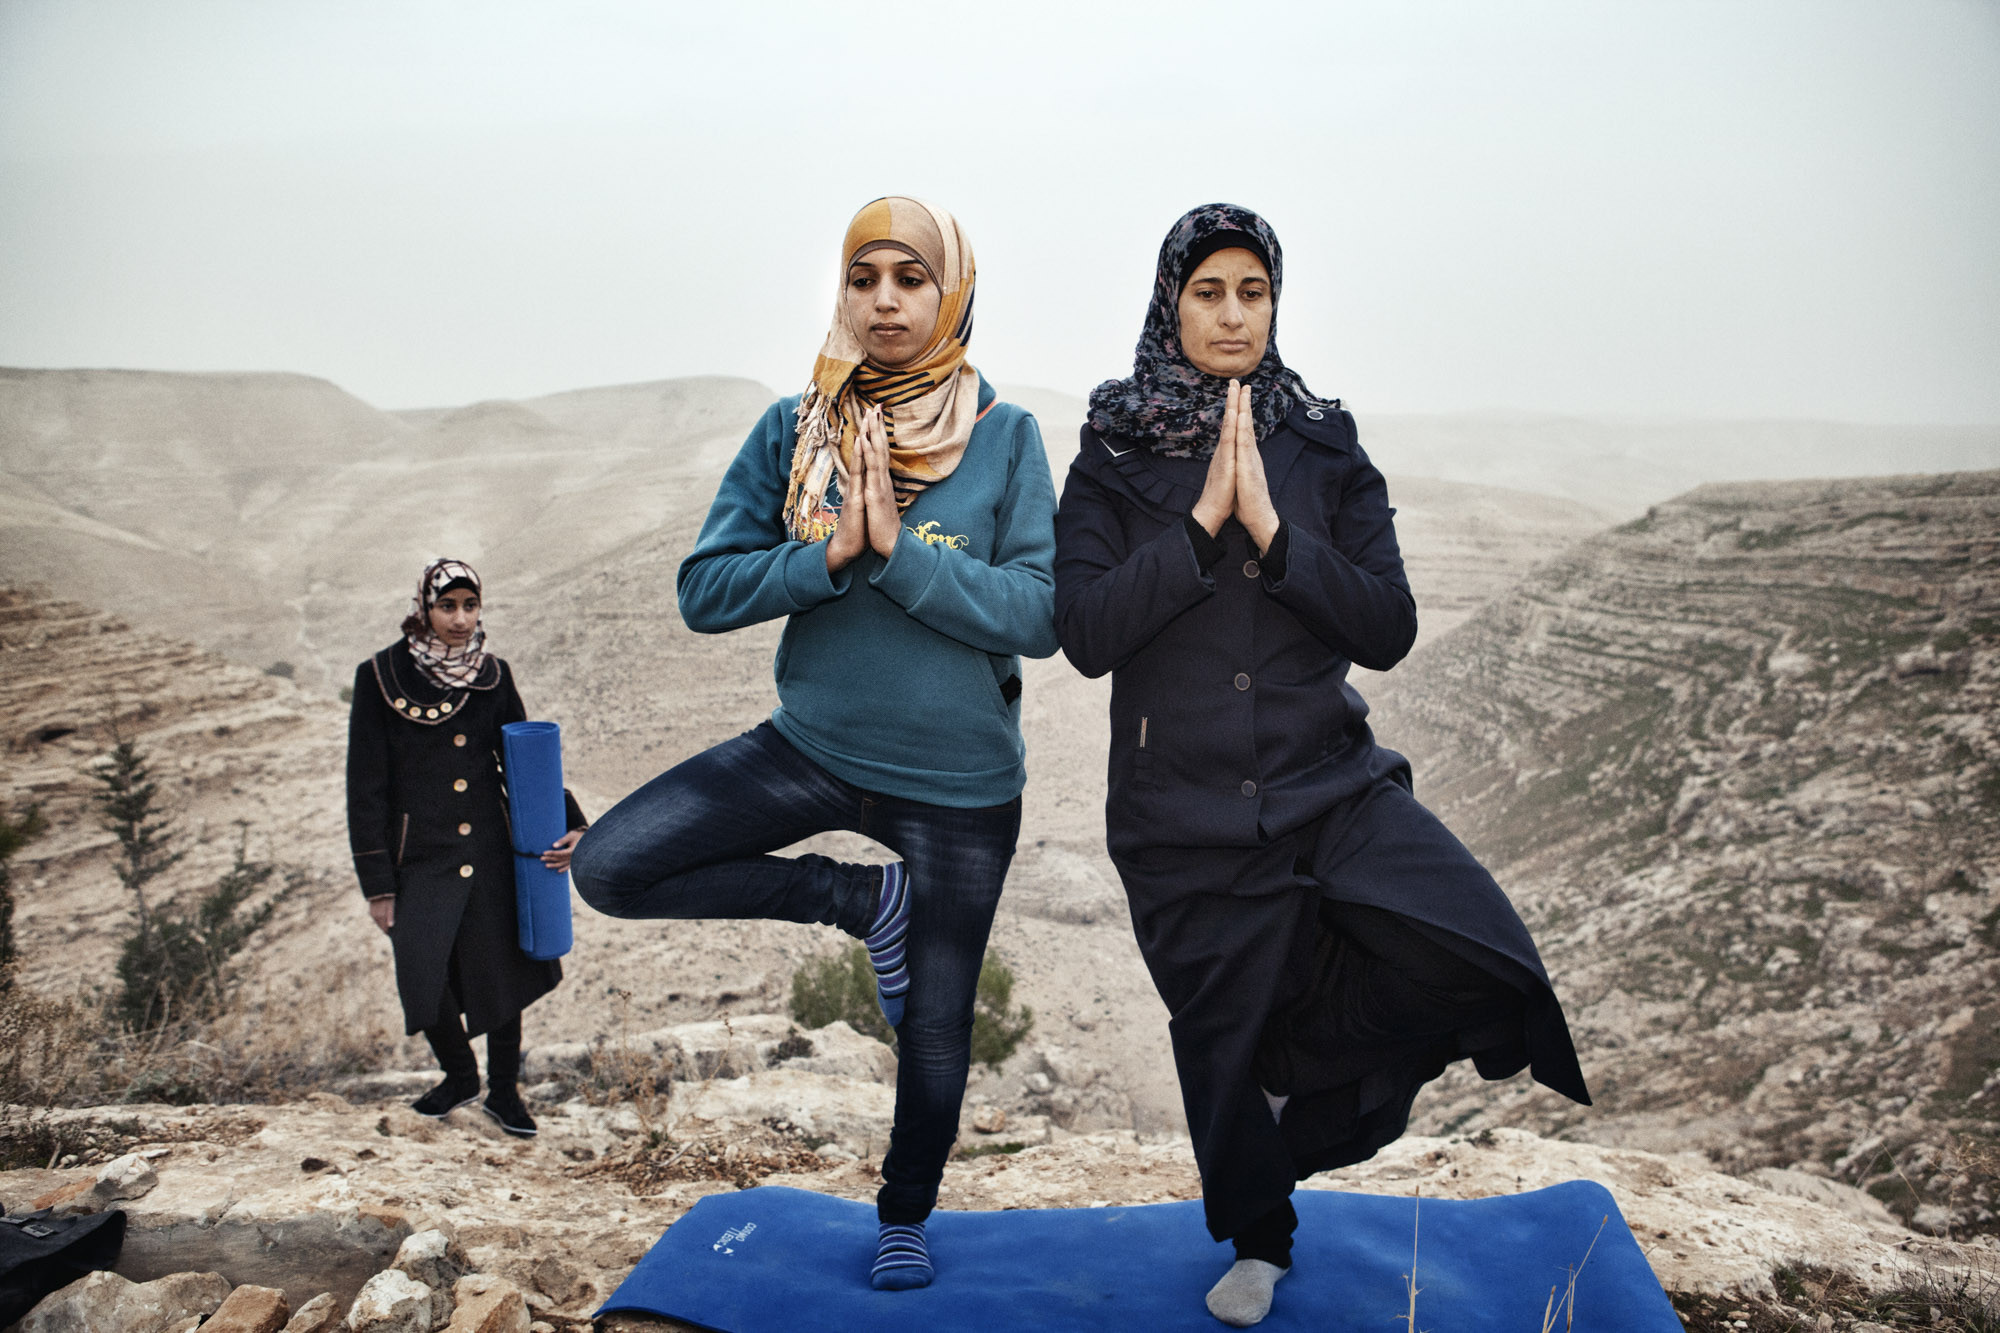 Occupied Palestinian Territories, West Bank, Za'tara, January 2013, Hayat (left) teaches yoga to the residents of her village, Zataara, on the outskirts of Bethlehem in the West Bank. The women are increasing in number each week.